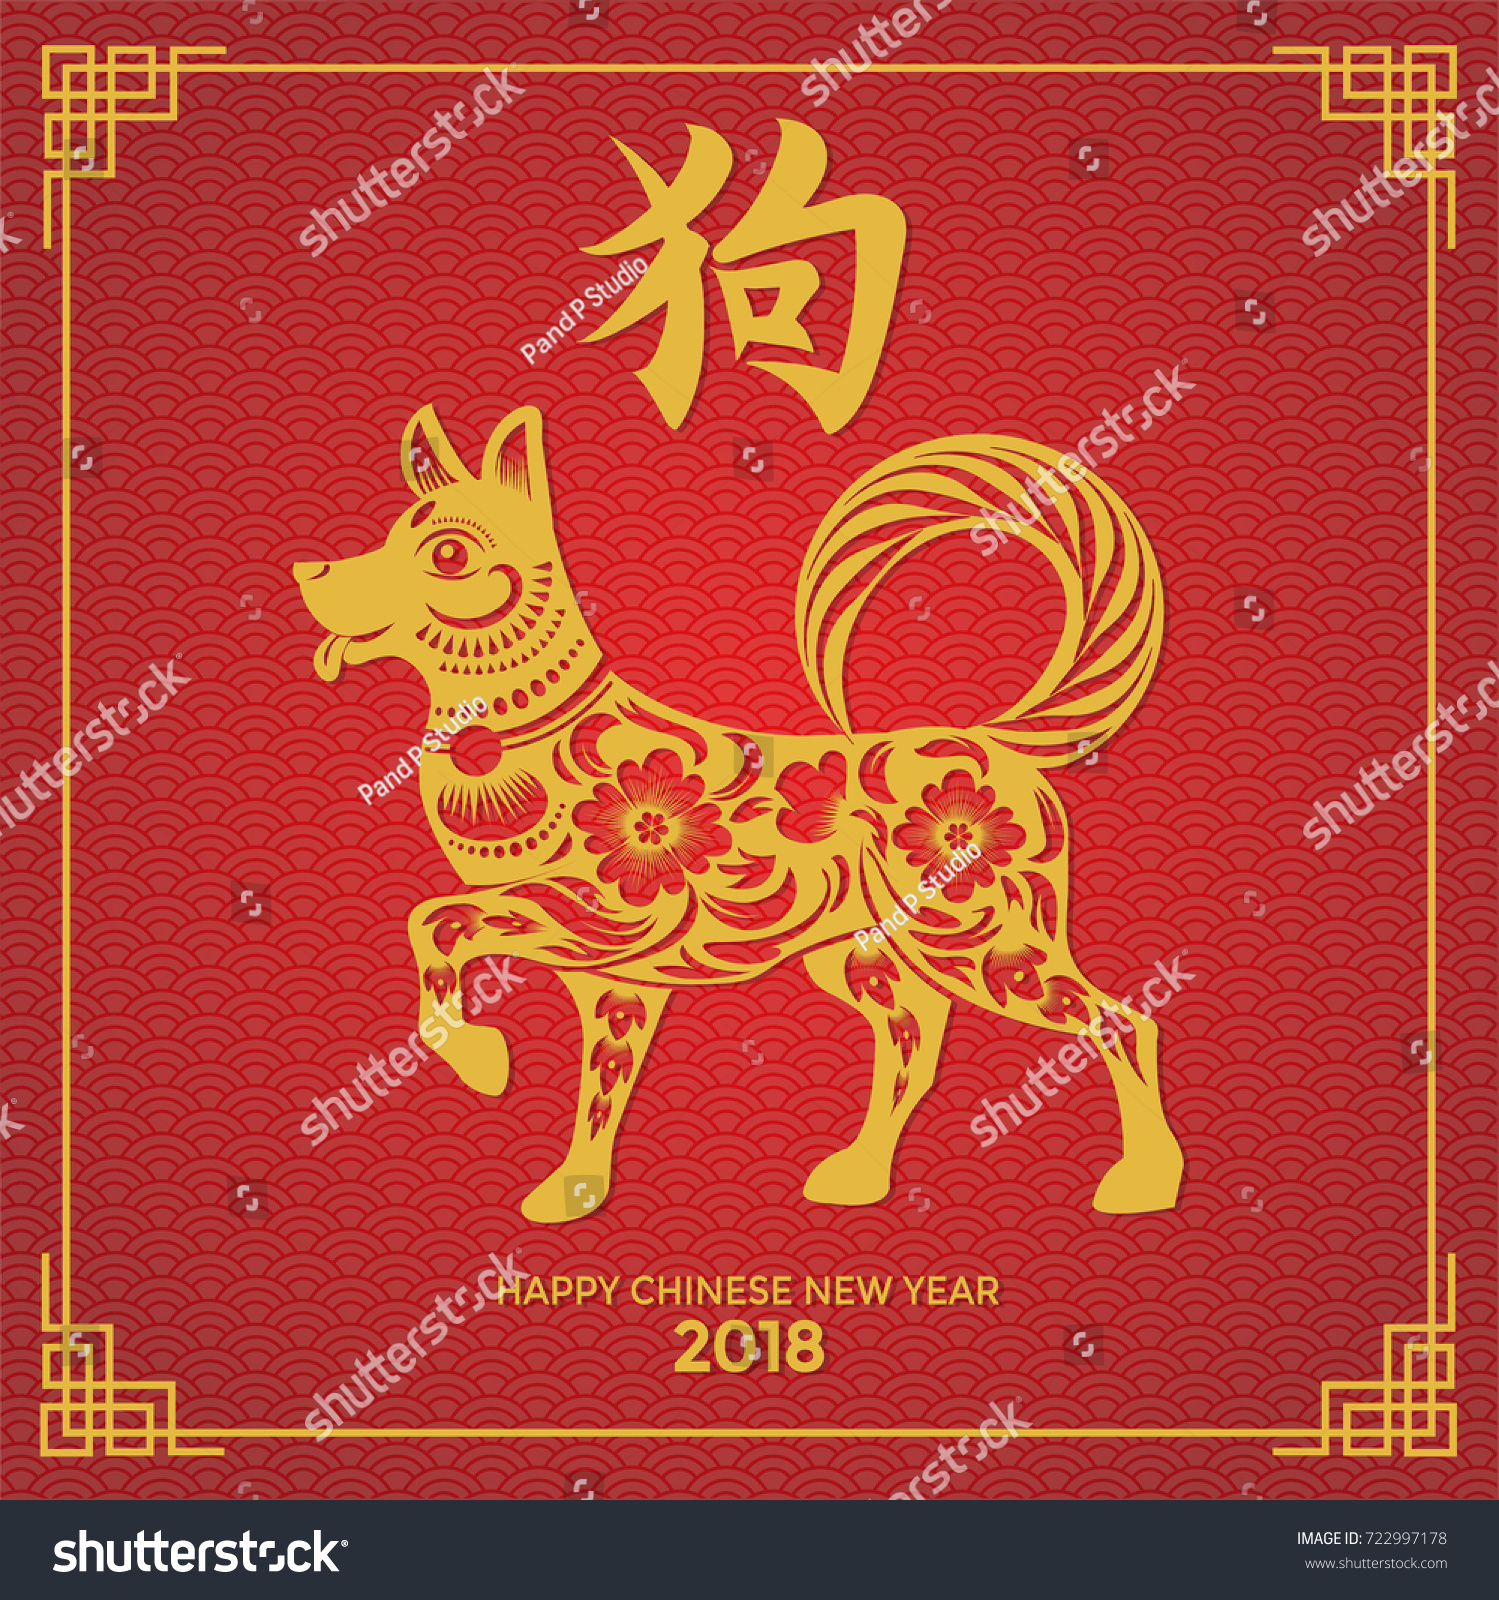 Happy chinese new year 2018 card stock vector 722997178 shutterstock happy chinese new year 2018 card year of dogdesign for greeting cards calendars kristyandbryce Choice Image